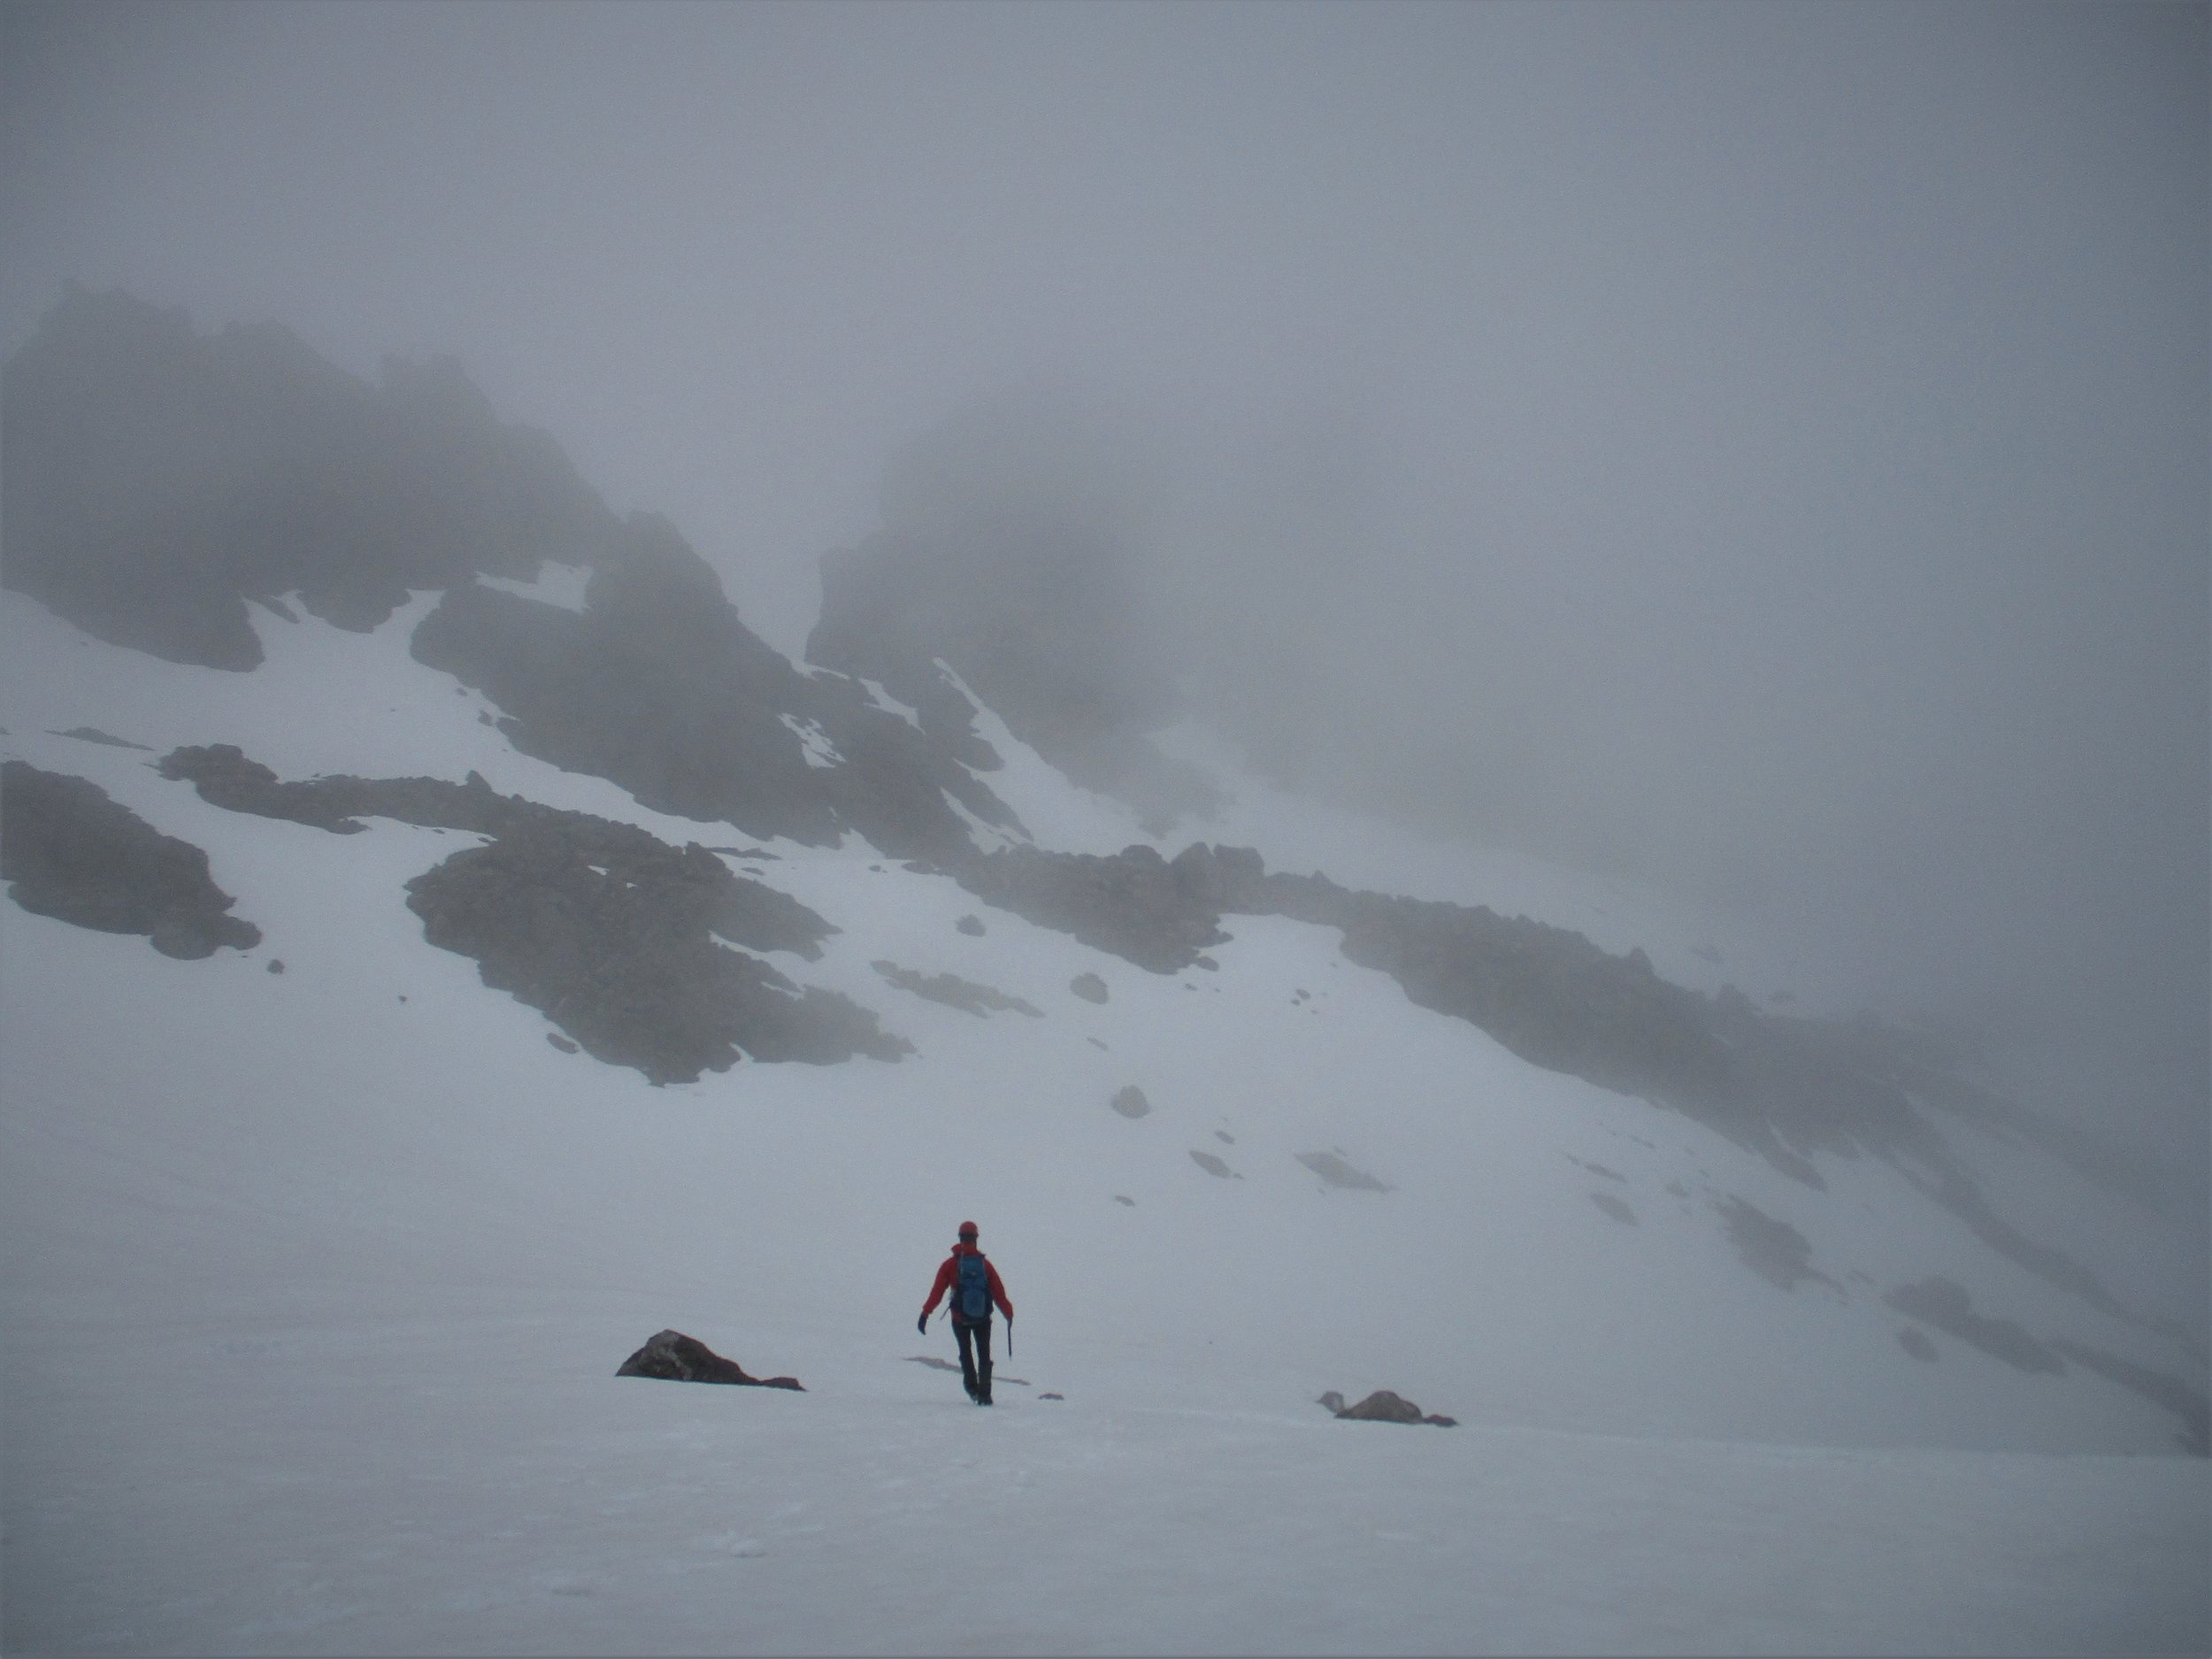 Wading through the mist's up to another little climbed peak, this time 2136 m in the Nelson lakes.